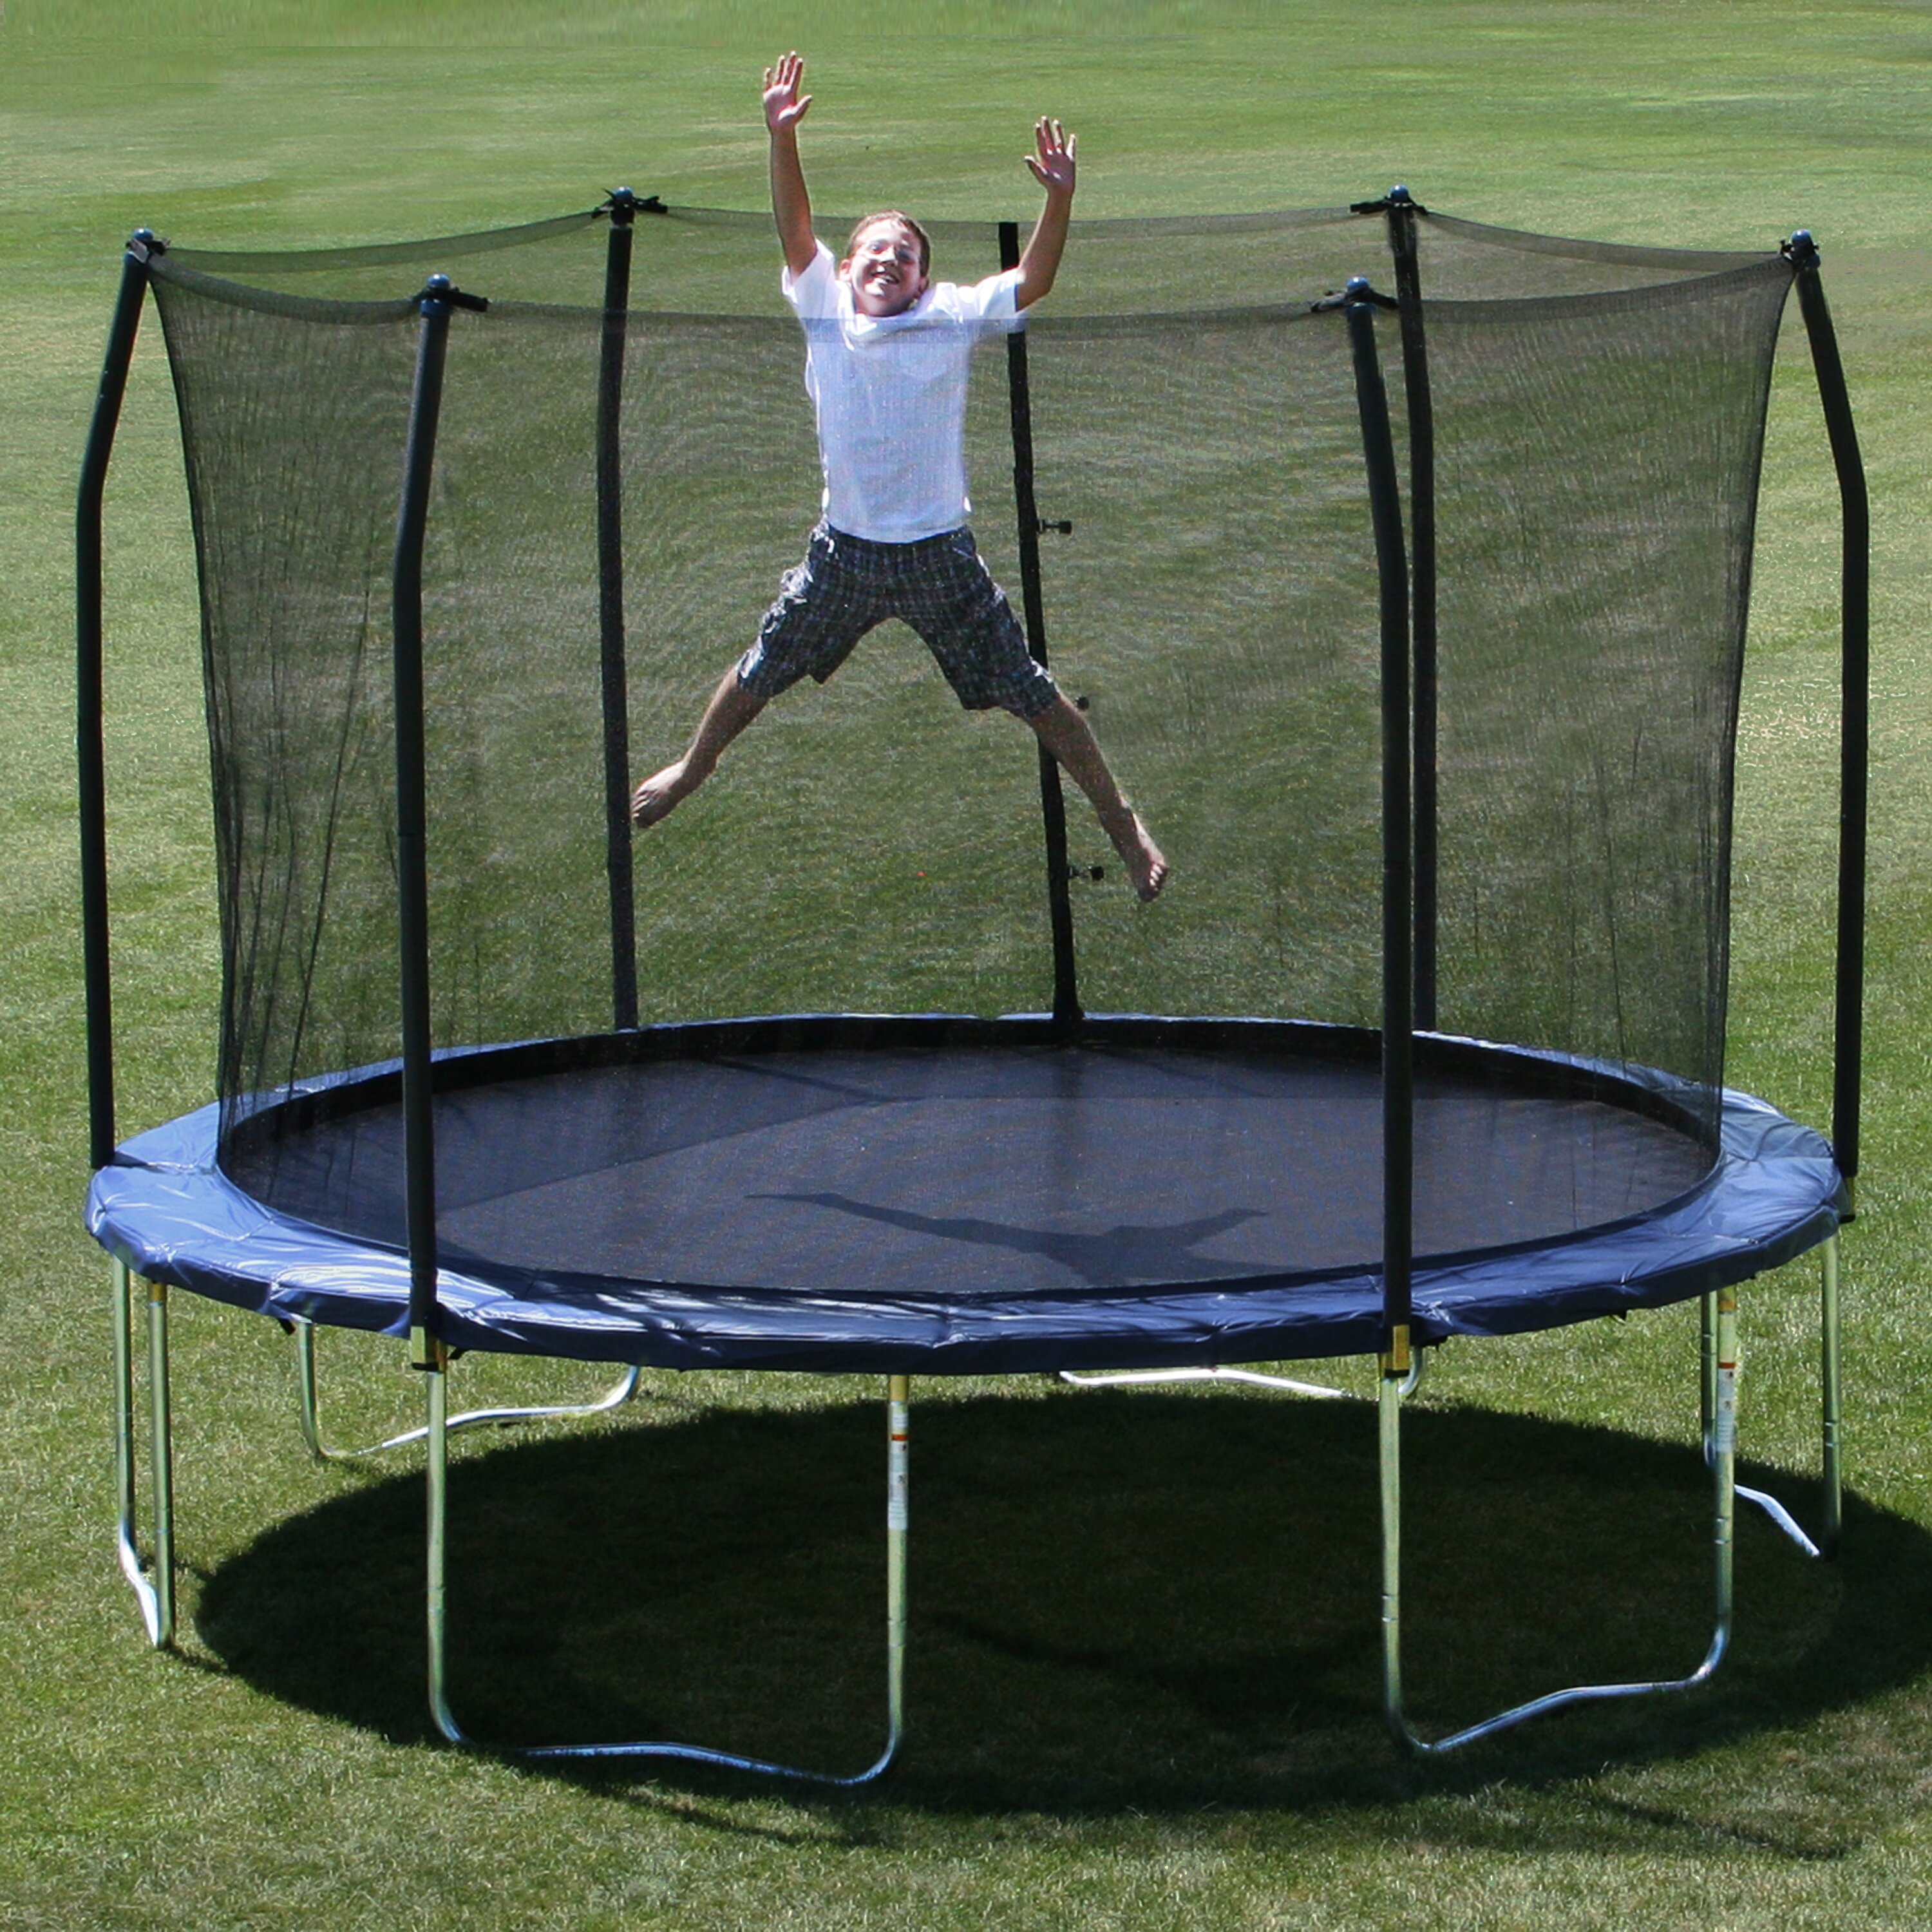 12 Foot Trampoline By Jumpsport: Skywalker 12' Trampoline With Safety Enclosure & Reviews